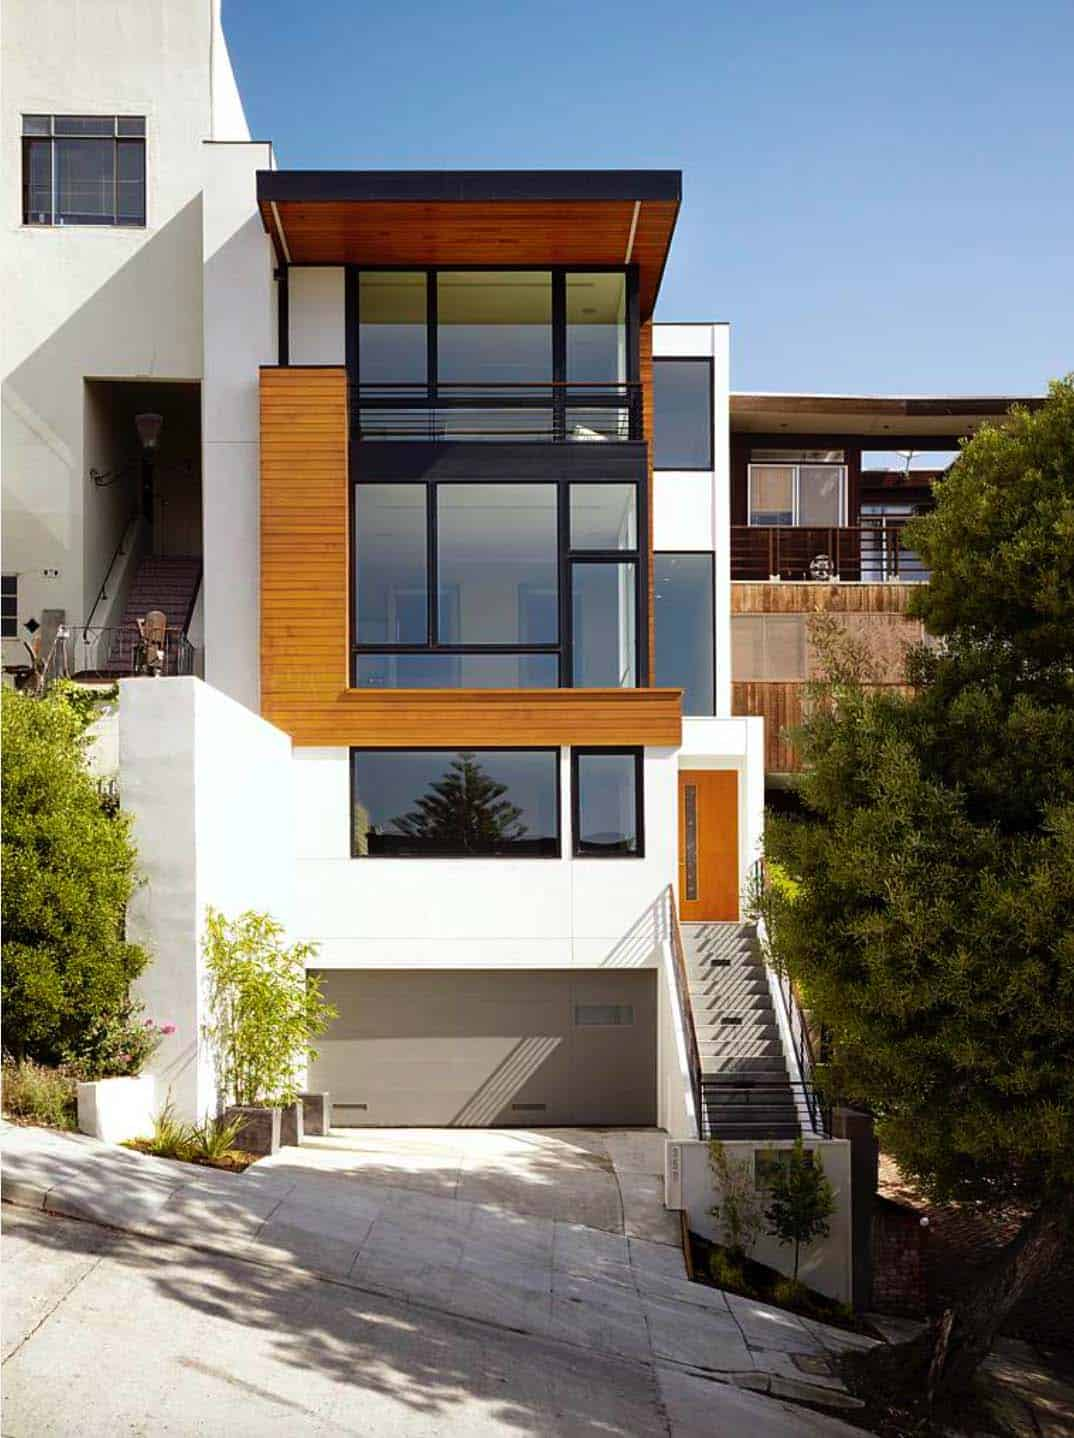 Architecture Modern Hillside Home-25-1 Kindesign